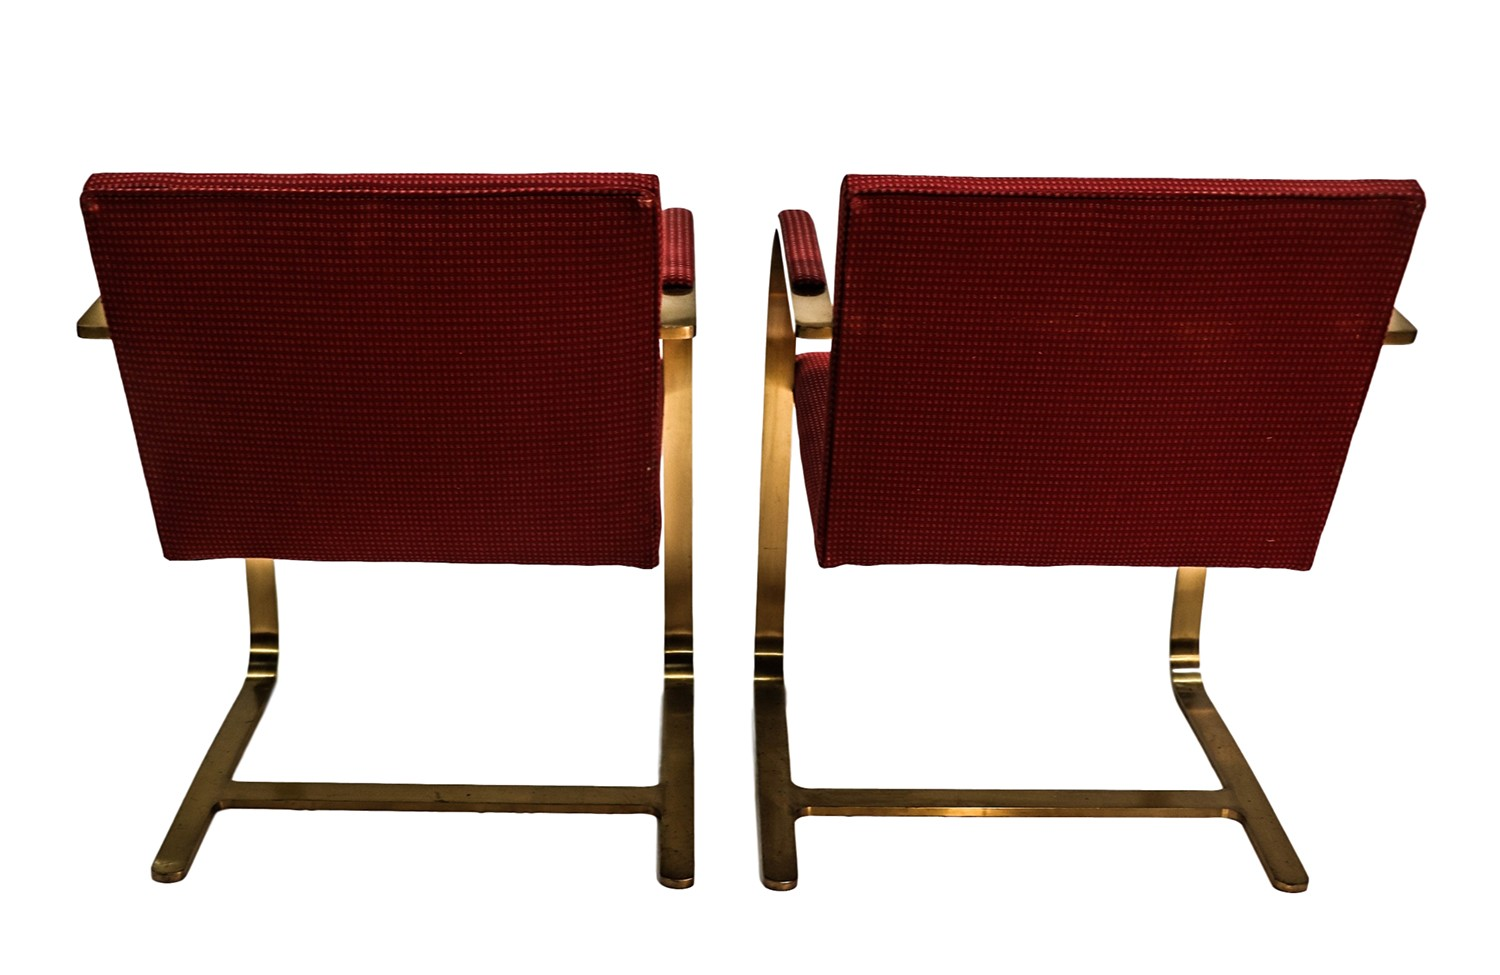 Mies van der Rohe Brno Chairs Knoll 1960s pair : Mies van der Rohe Brno Chairs Knoll 1960s pair 3 from marykaysfurniture.com size 1500 x 975 jpeg 407kB